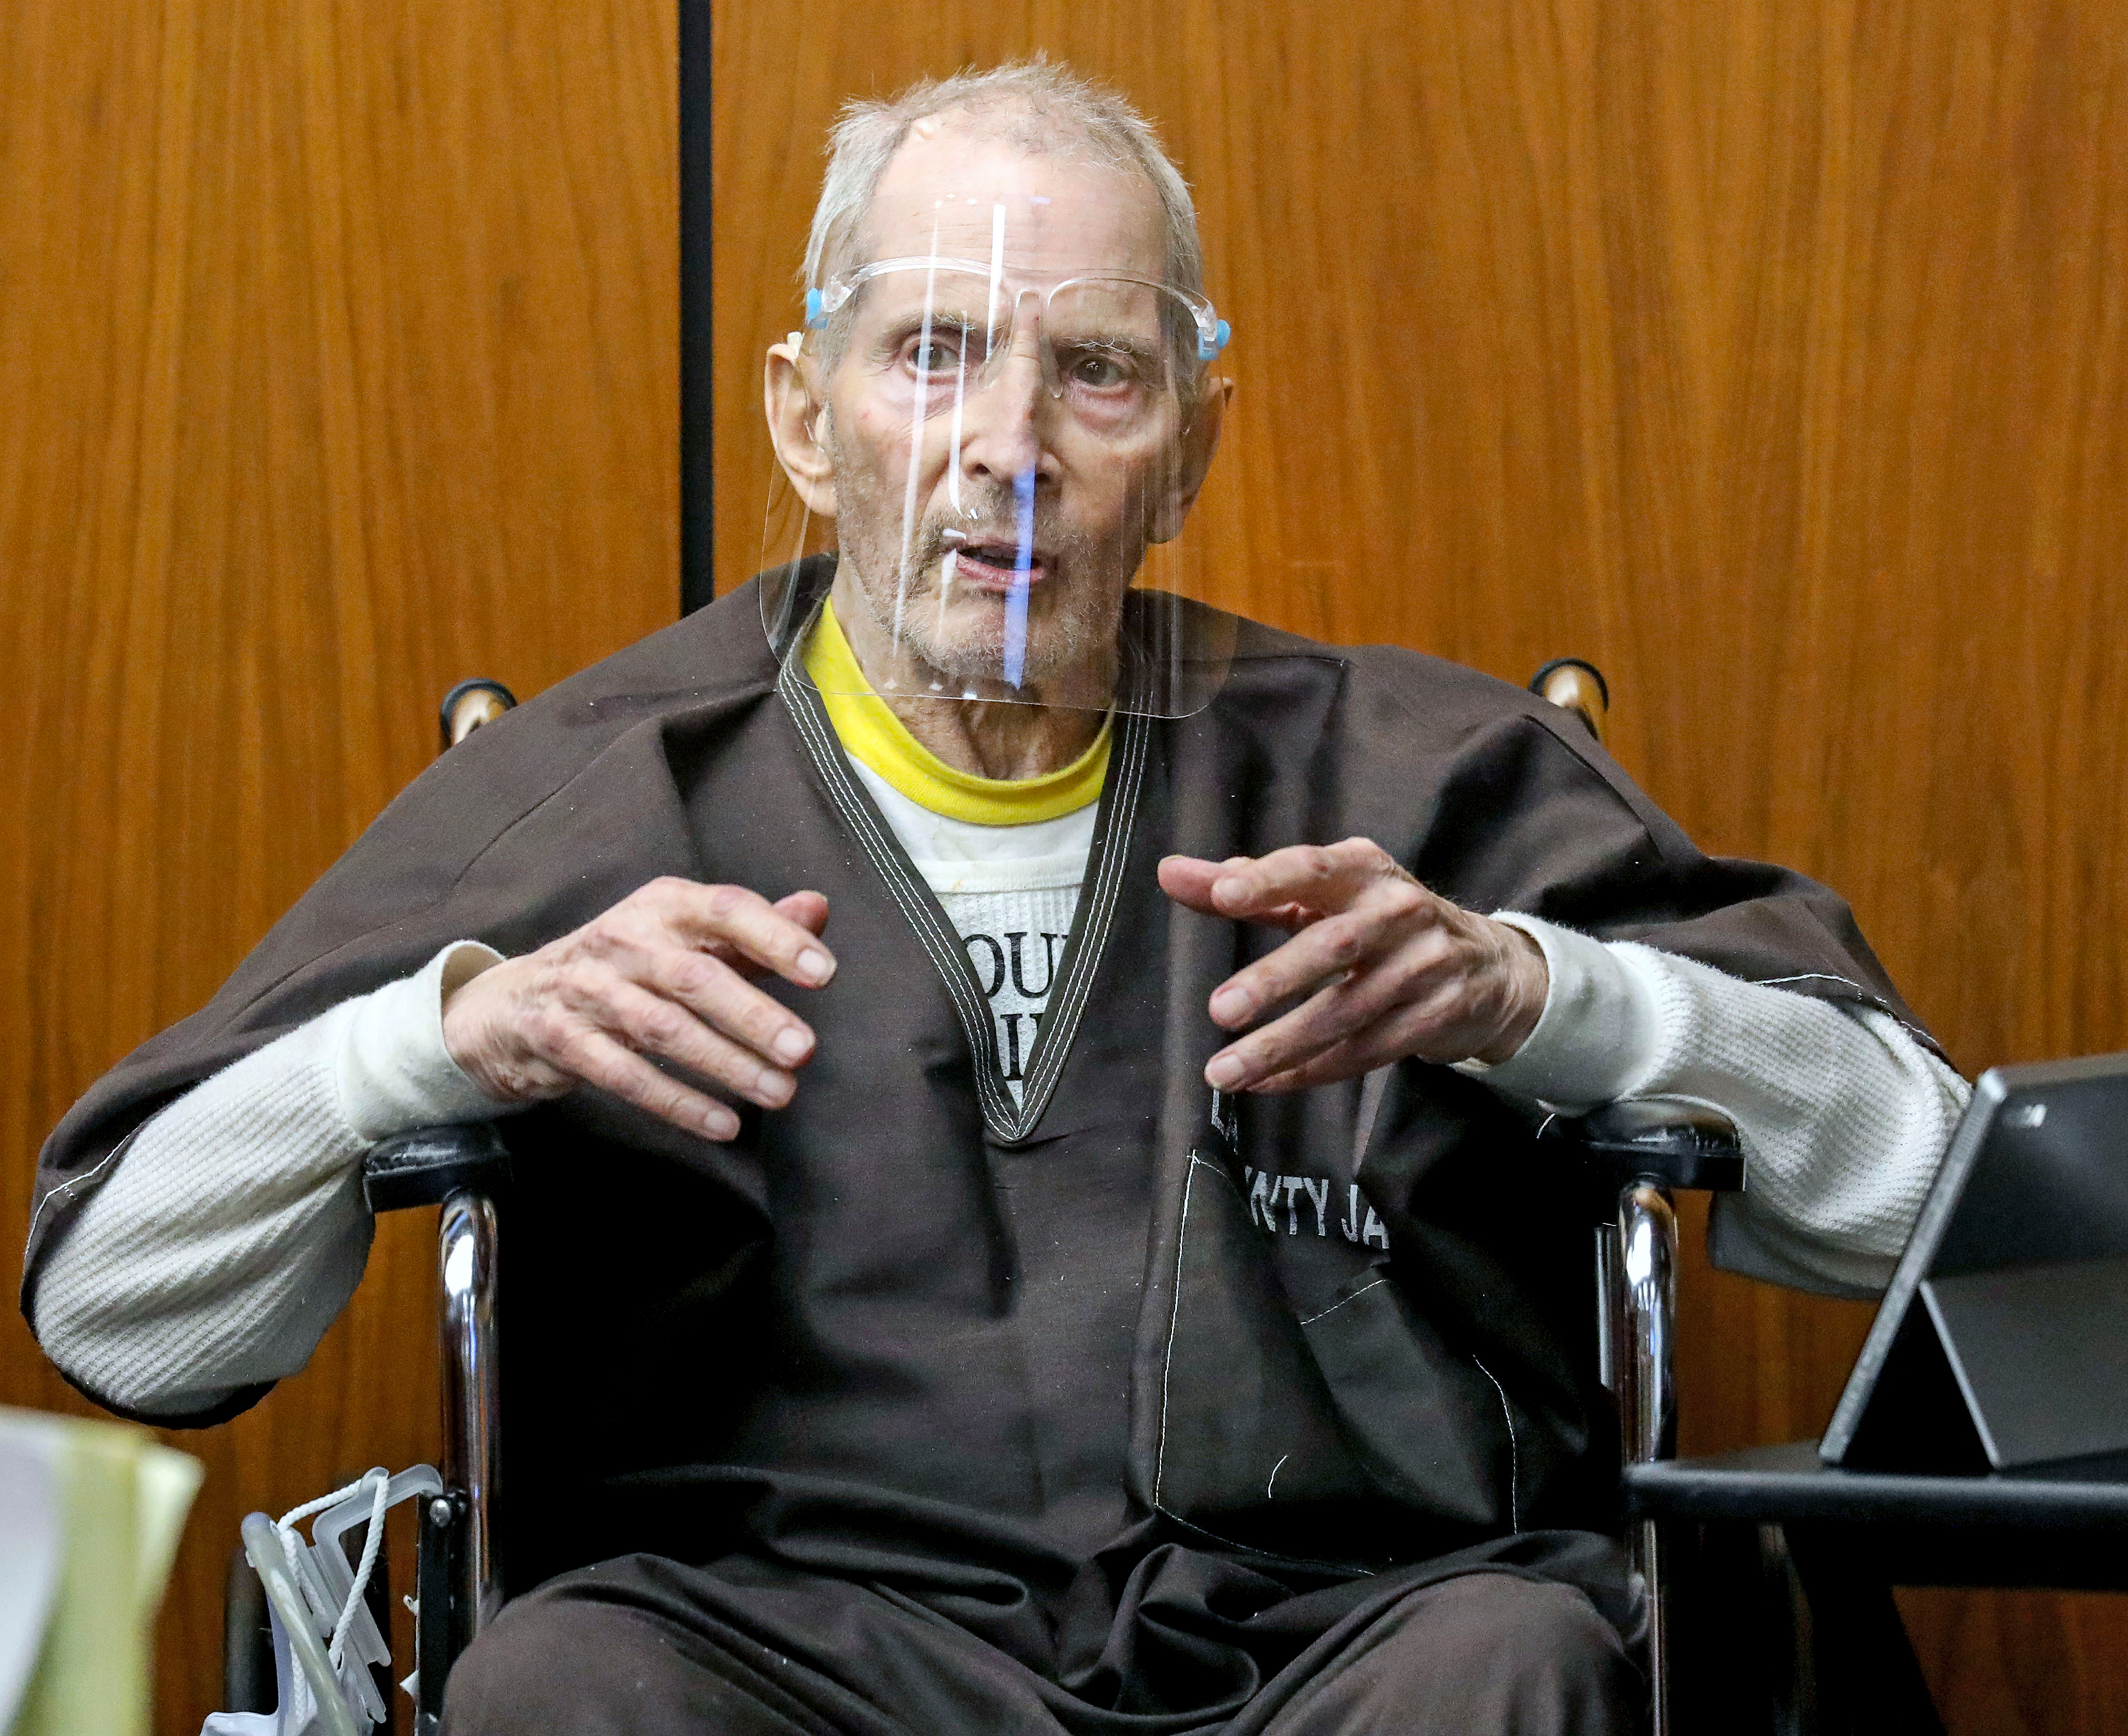 Robert Durst testifies during his murder trial at the Inglewood Courthouse in California, on August 9, 2021.